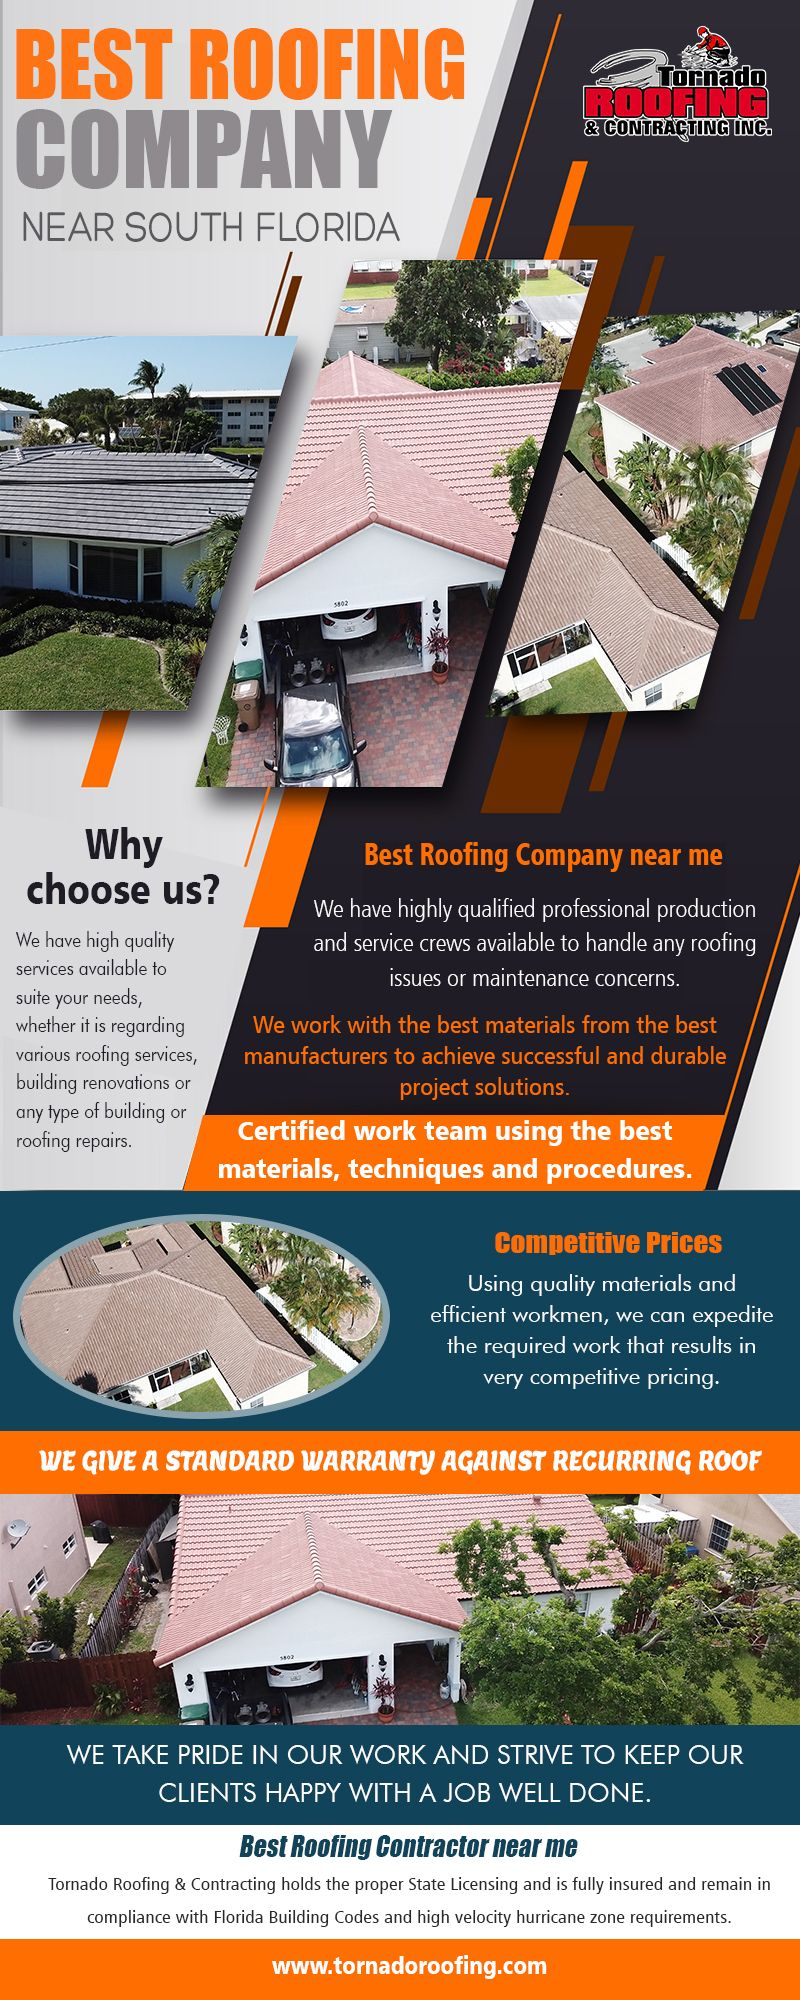 Best Roofing Company Near South Florida In 2020 Best Roofing Company Cool Roof Roofing Services